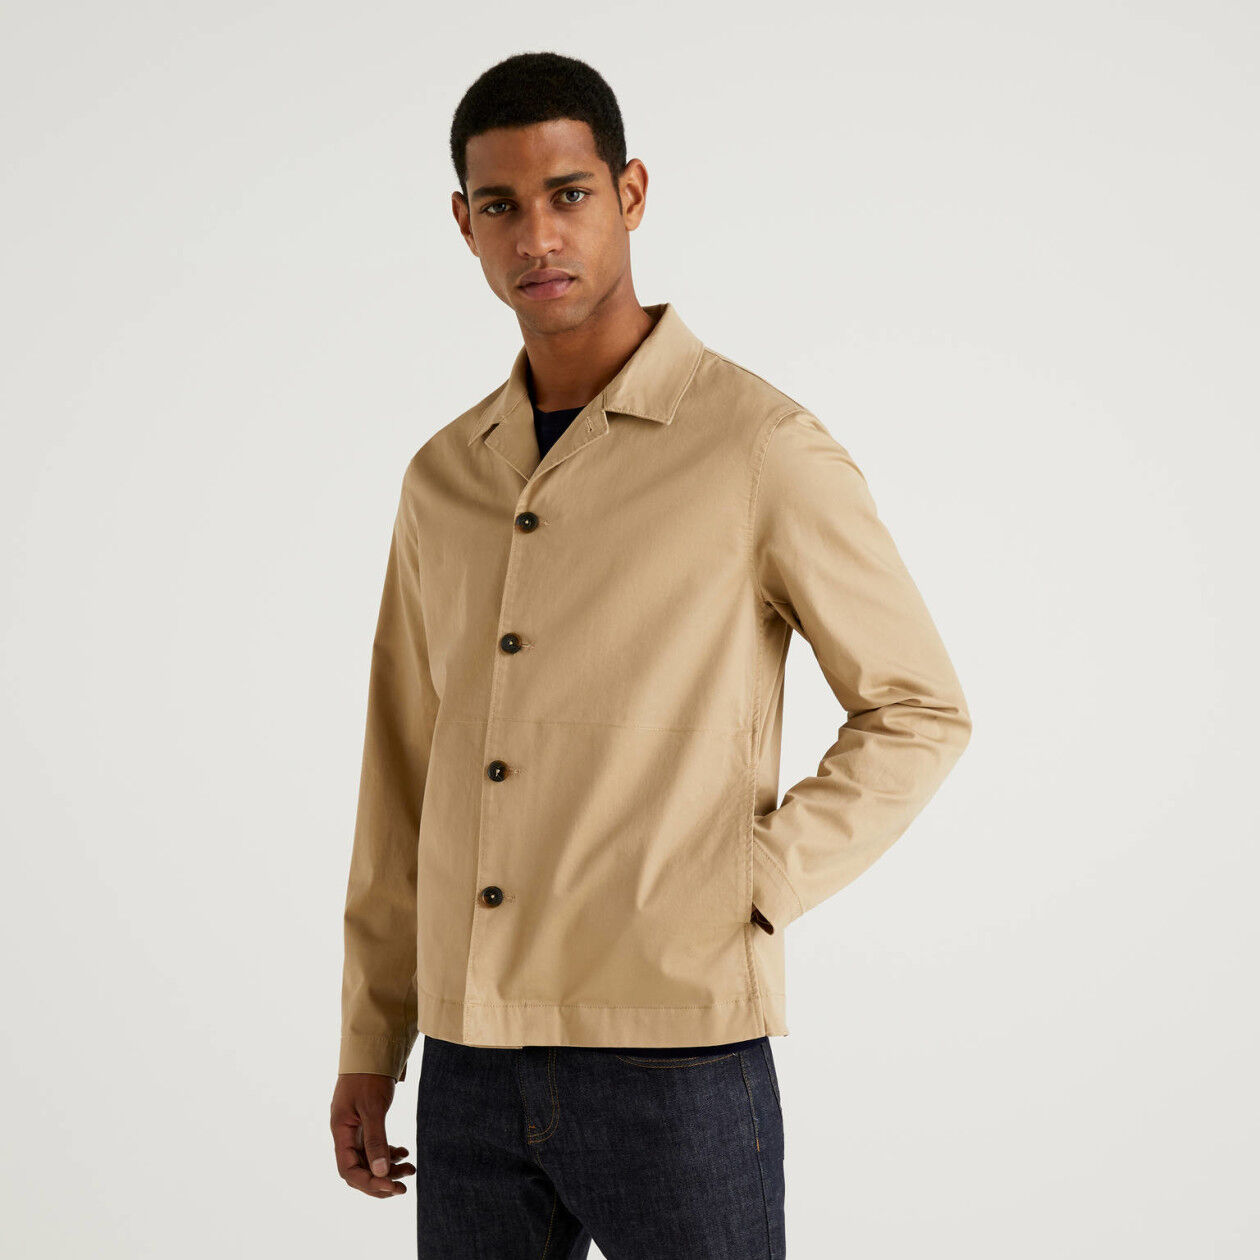 Stretch cotton jacket